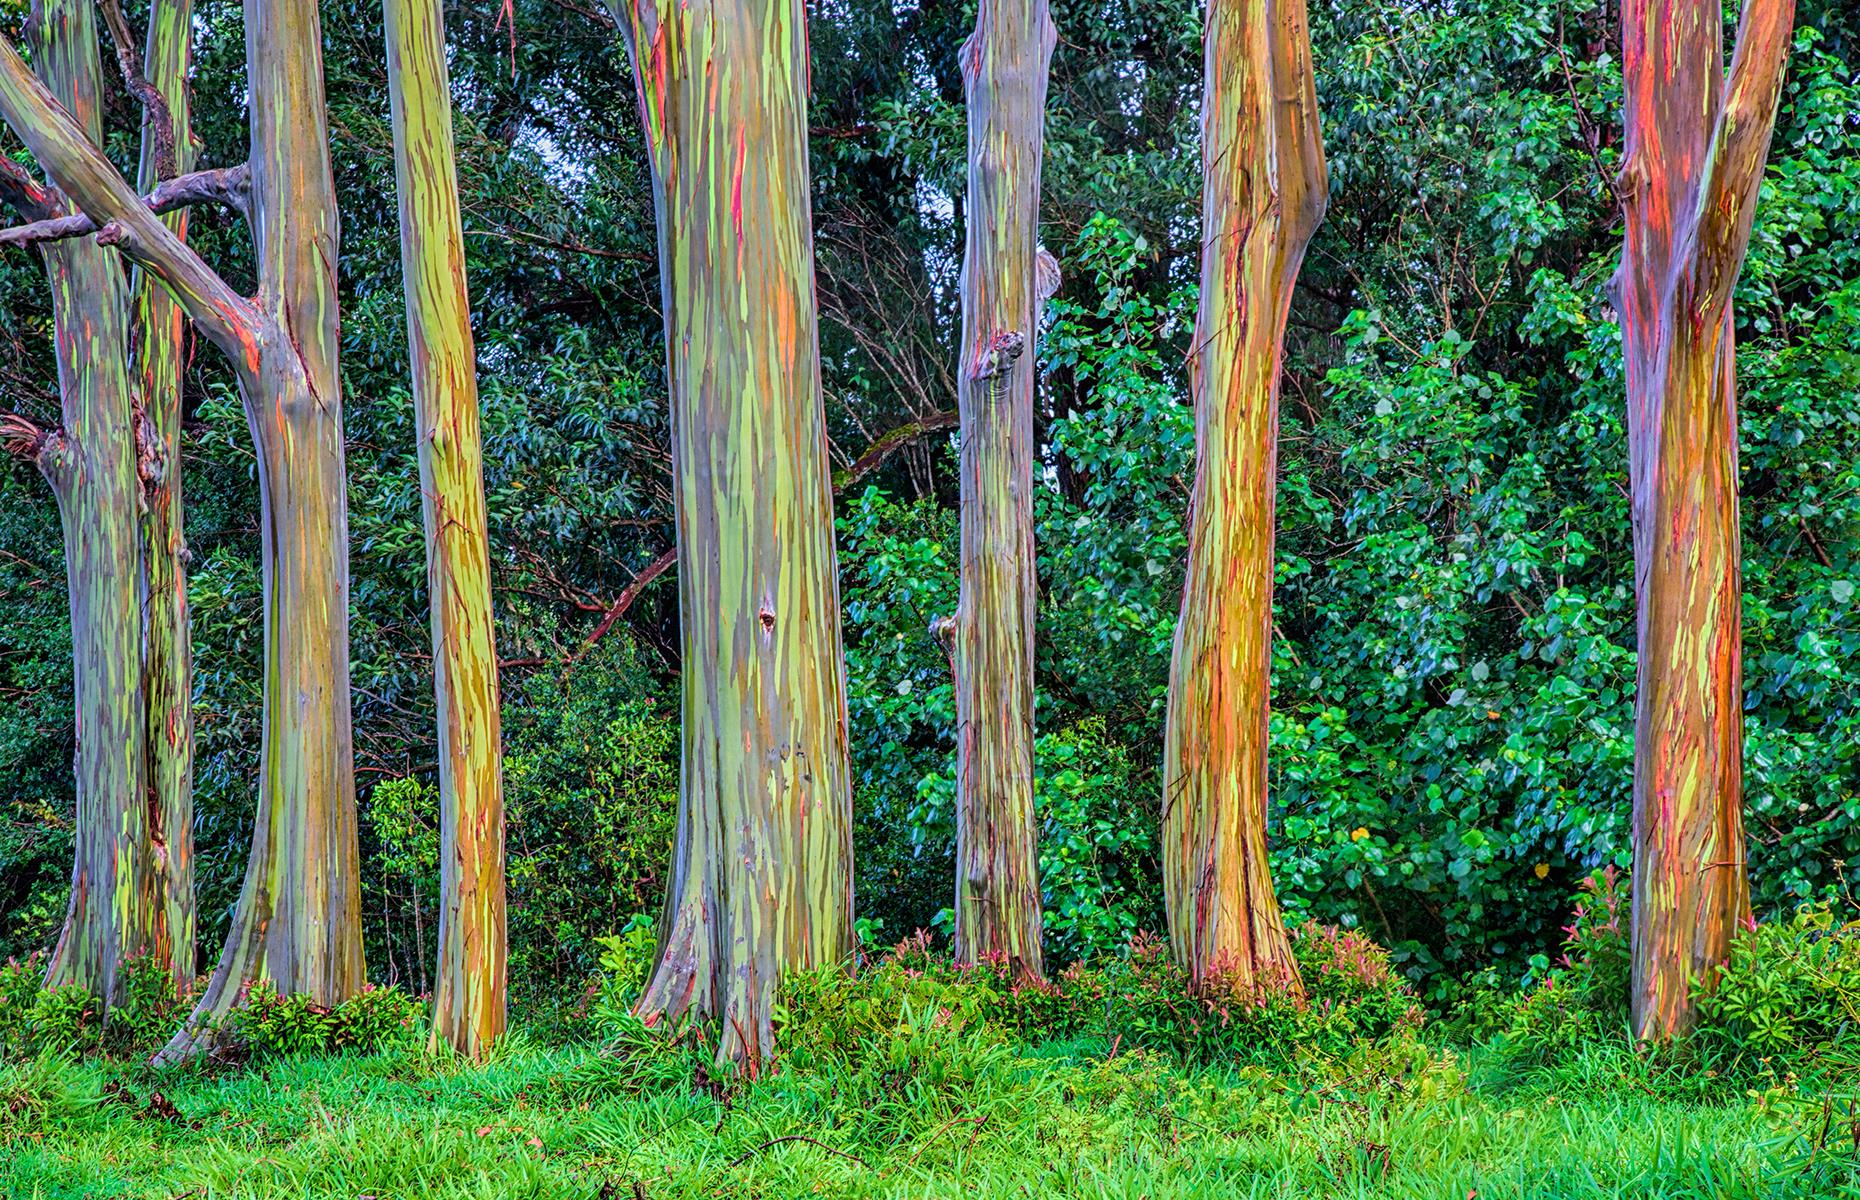 Slide 27 of 43: While these multicolored trunks may look like something out of a film, you can actually find them in Hawaii. Also known as the rainbow gum tree, the technicolor lines on these trees' trunks are down to different parts of the bark shedding at different times. On top of looking the part, these trees smell lovely too. See more stunning photos of the world's most beautiful trees.